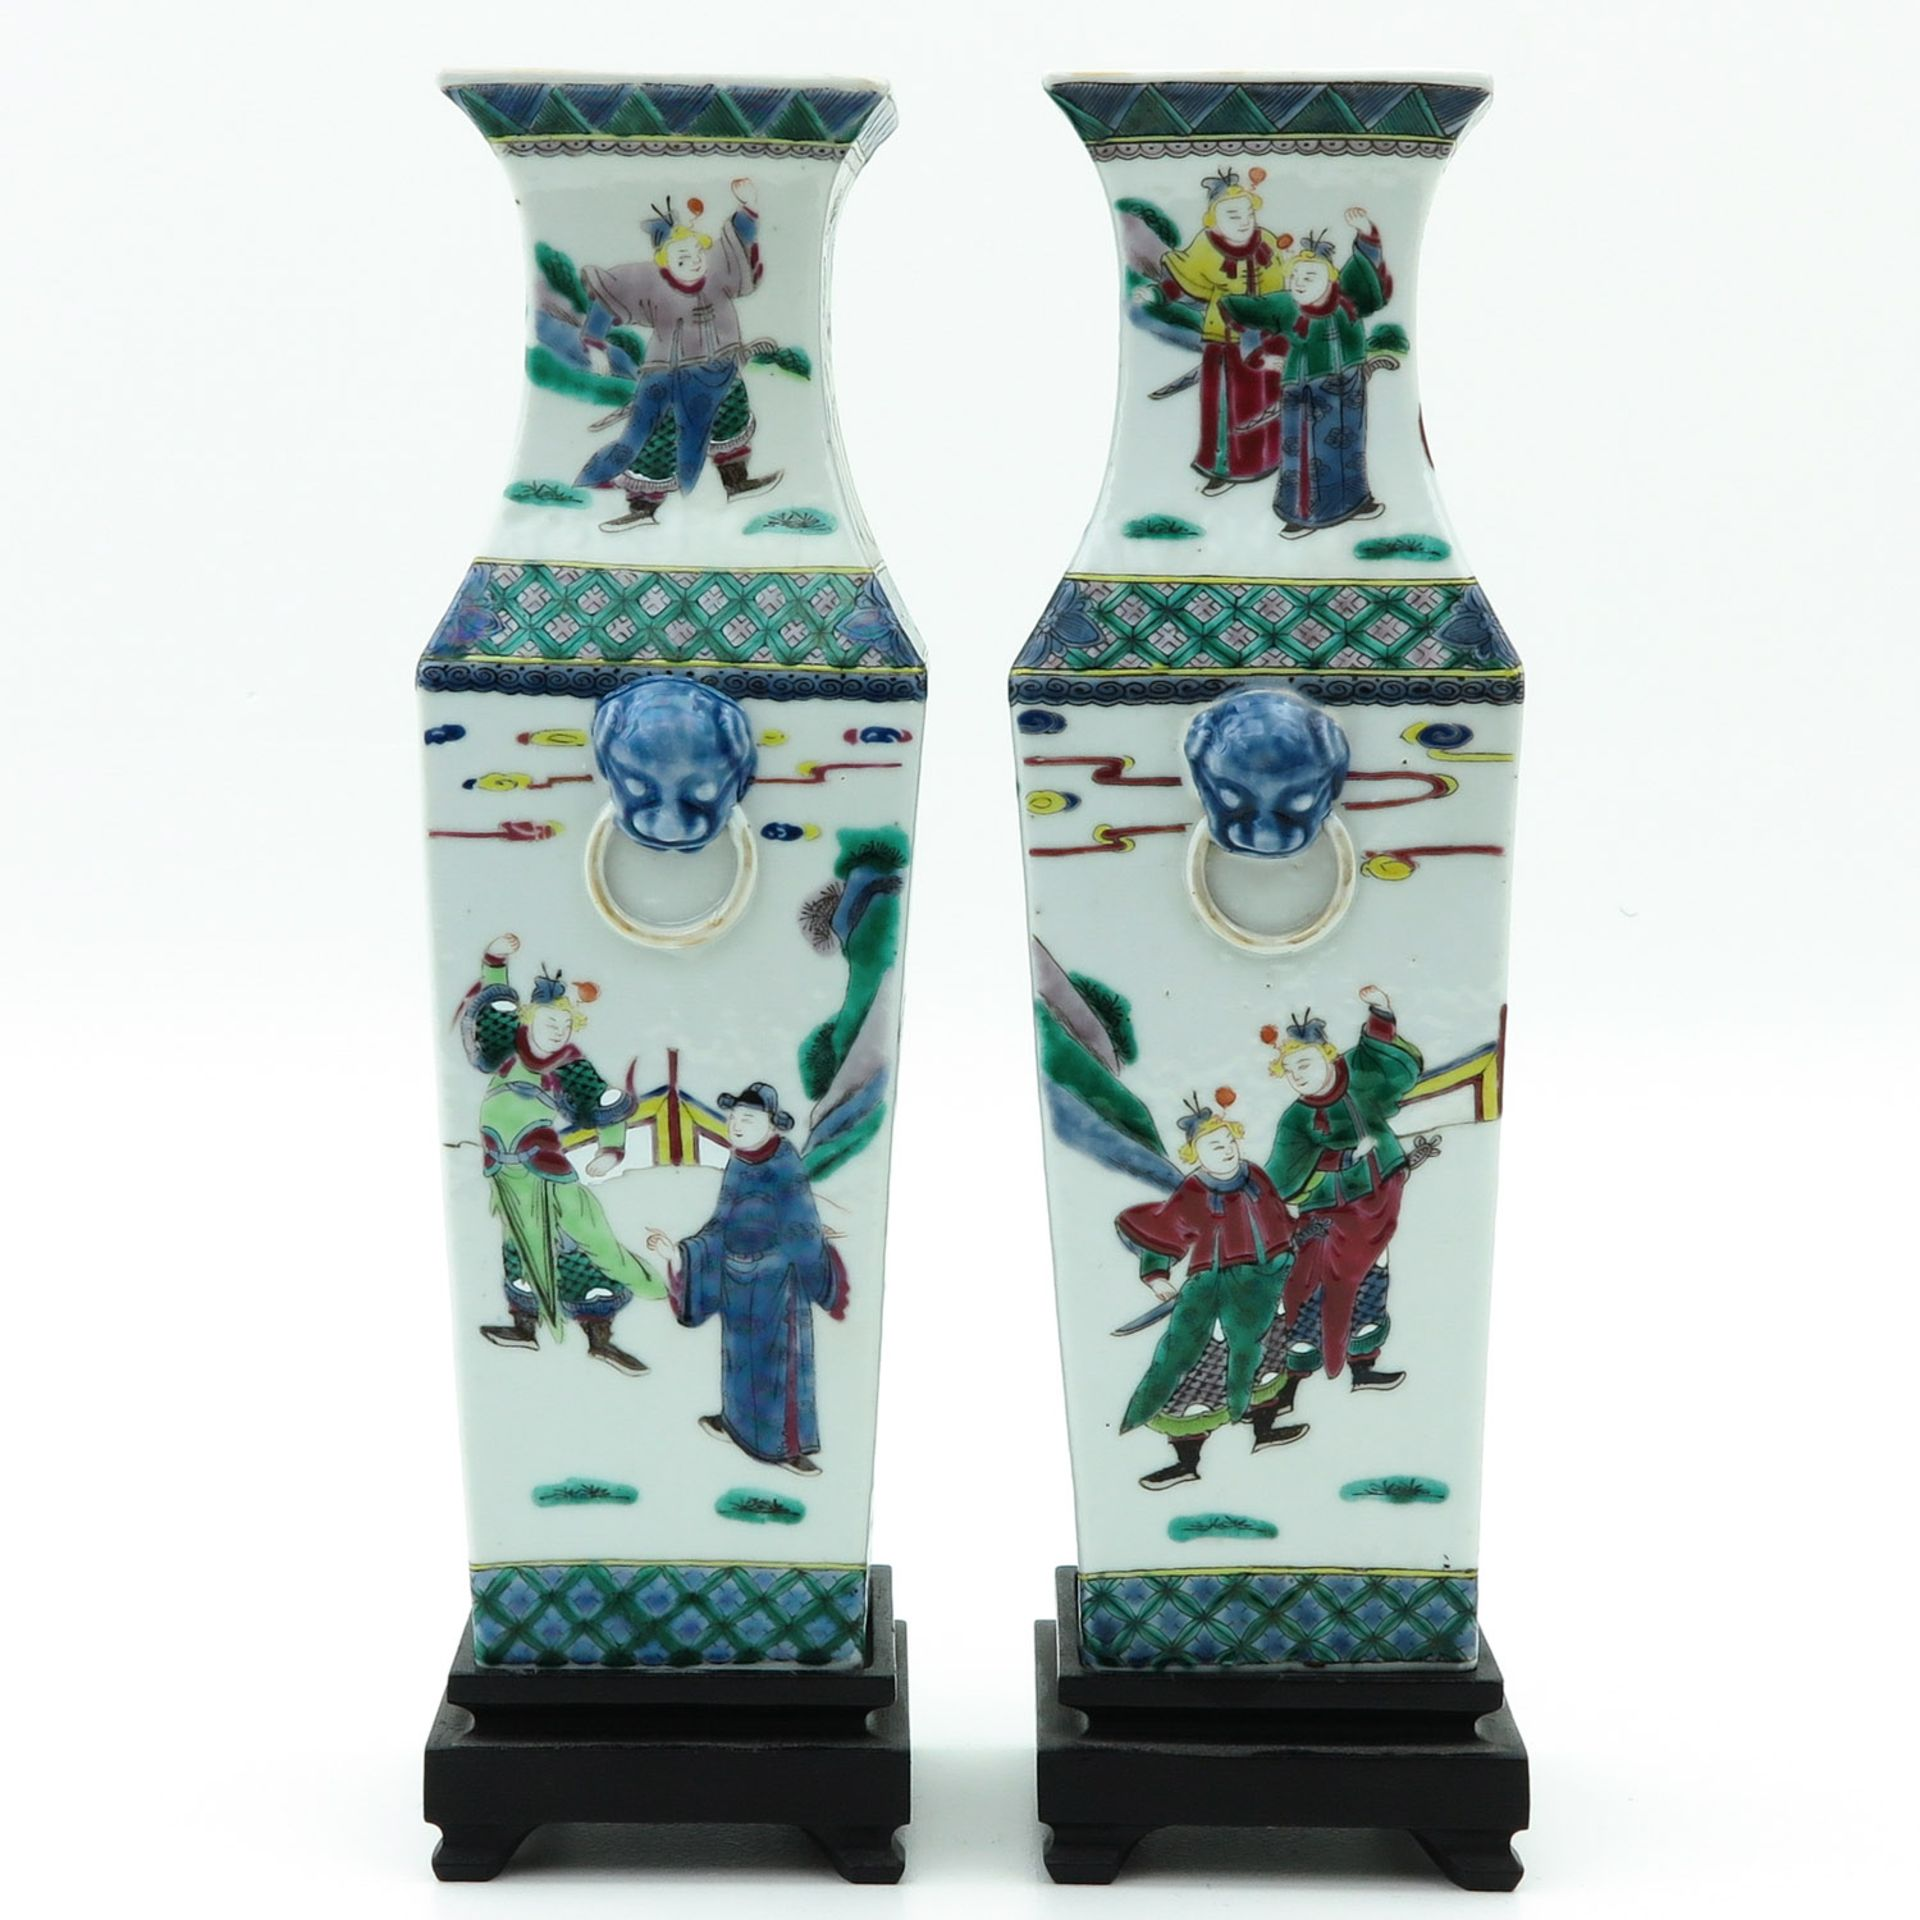 Los 7049 - A Pair of Square Vases on Wood Base